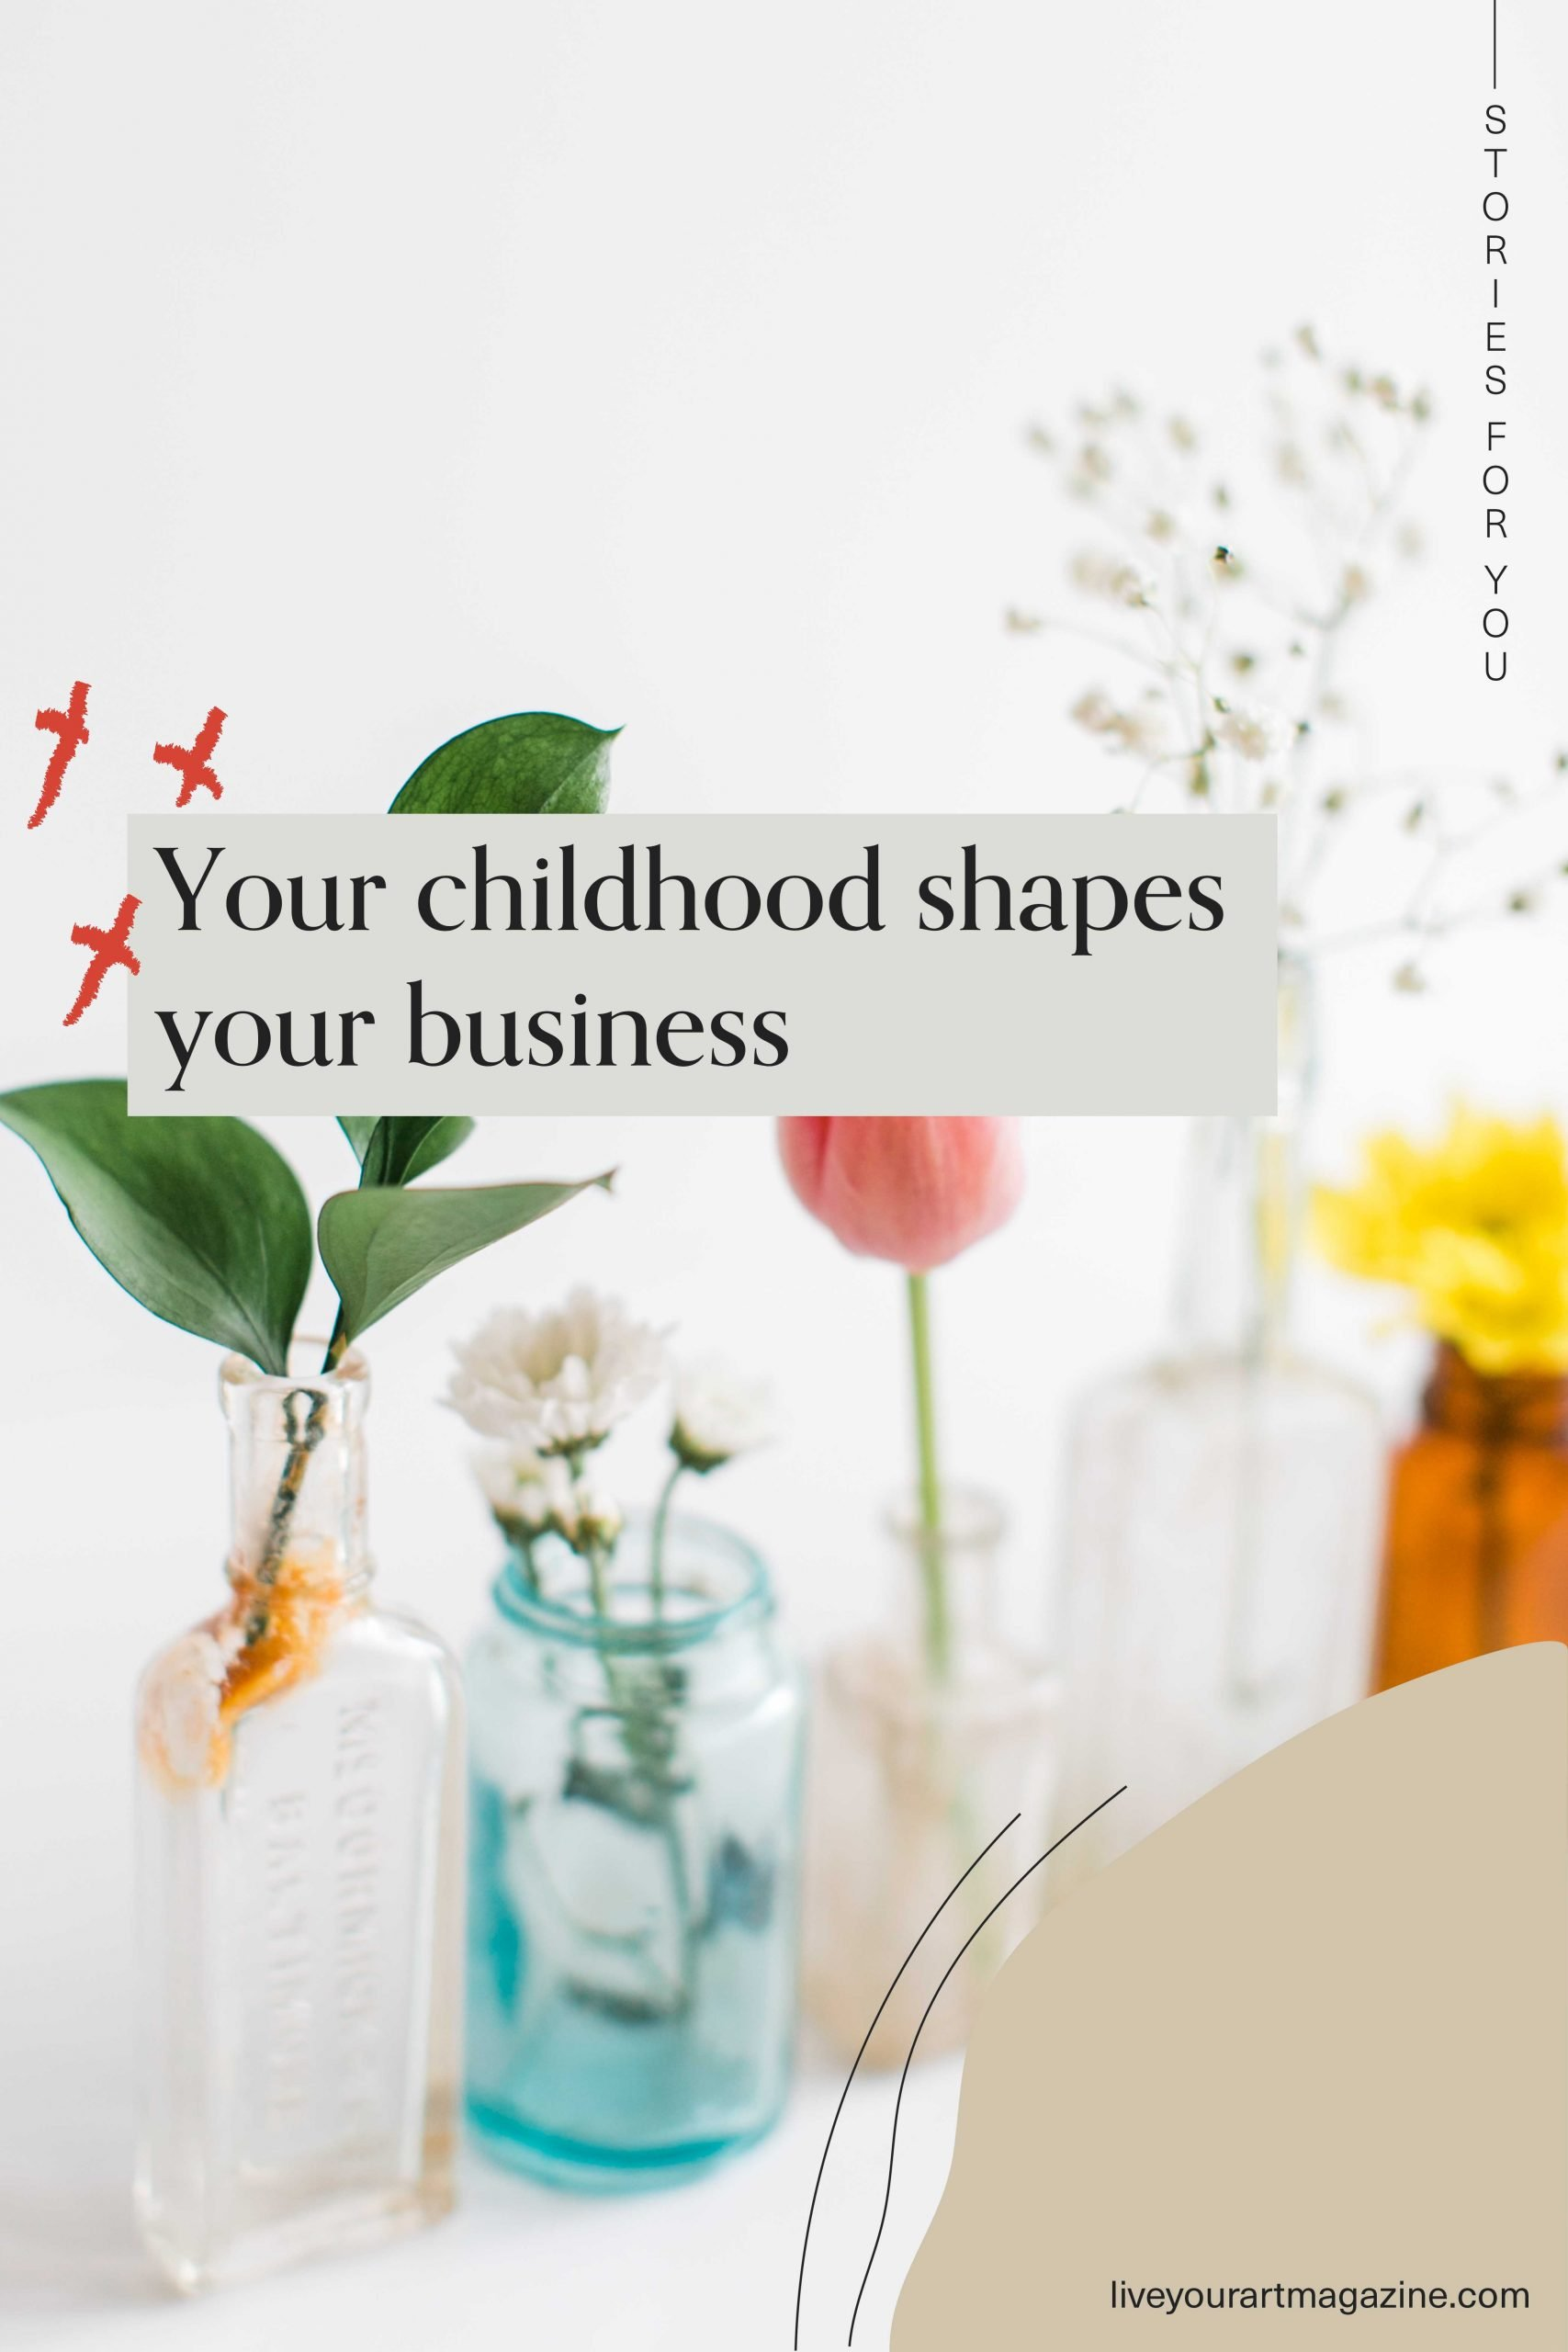 Your childhood shapes your business